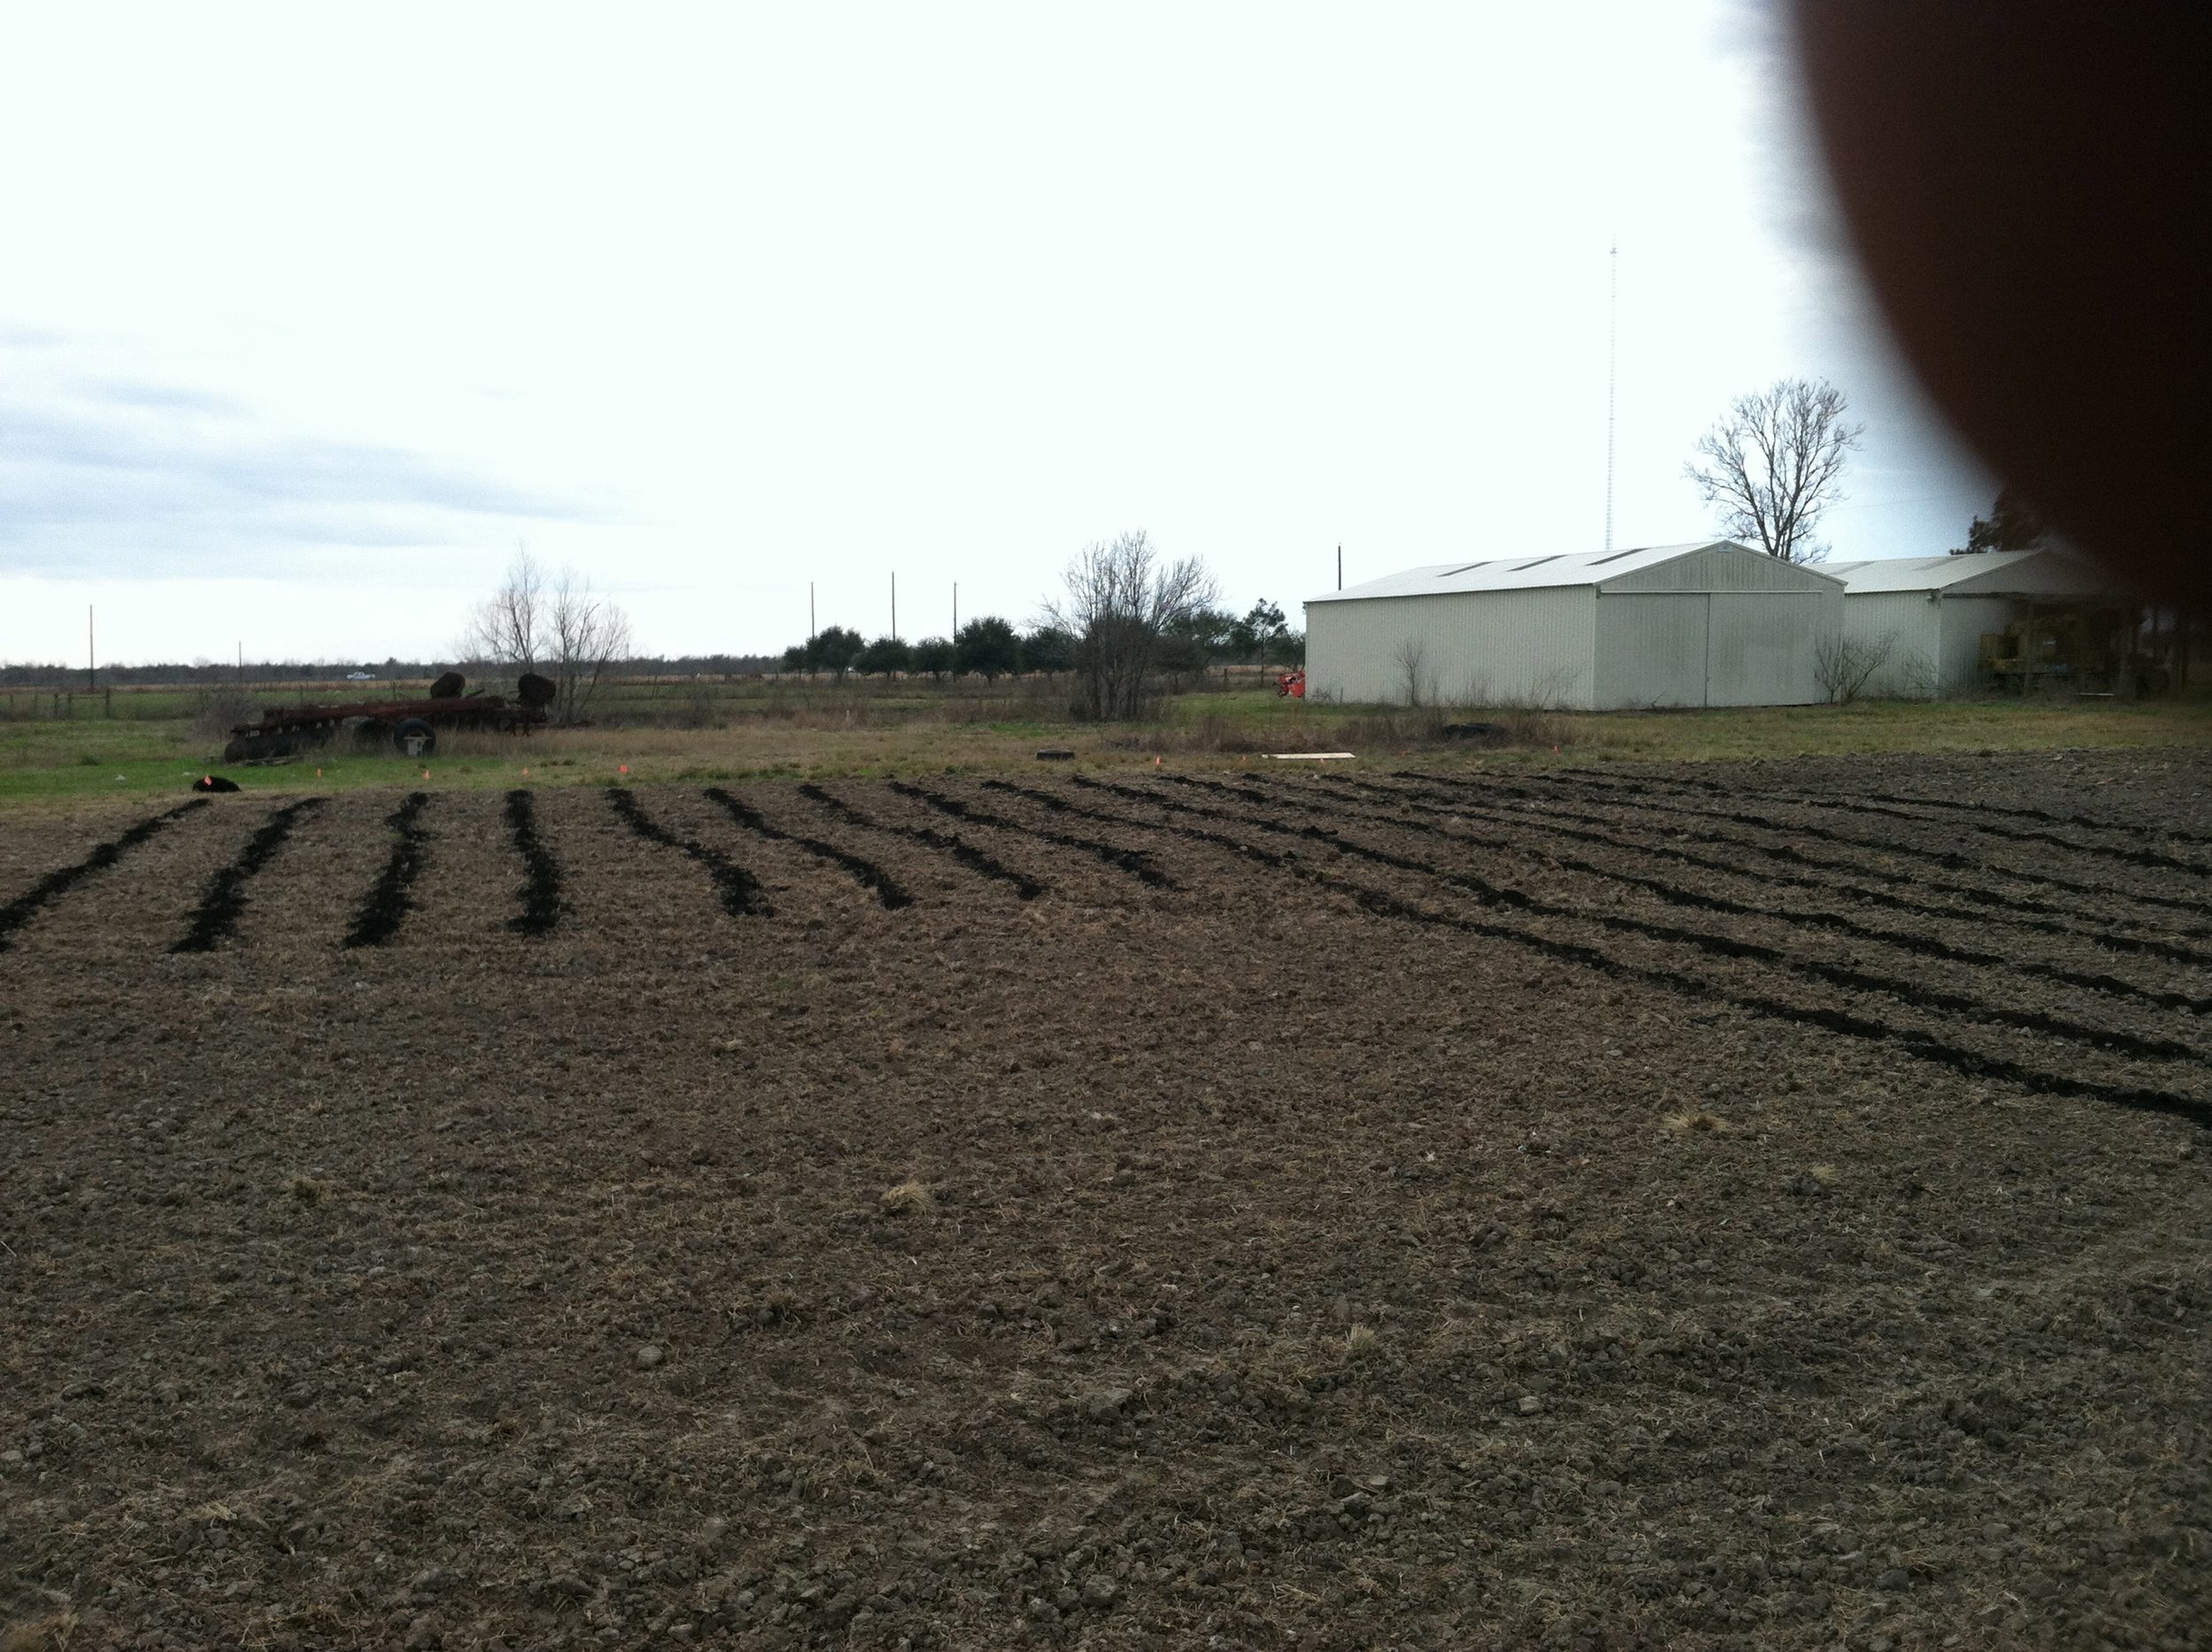 Compost spread through nearly the whole field. The lines mark where our veggie beds will be.